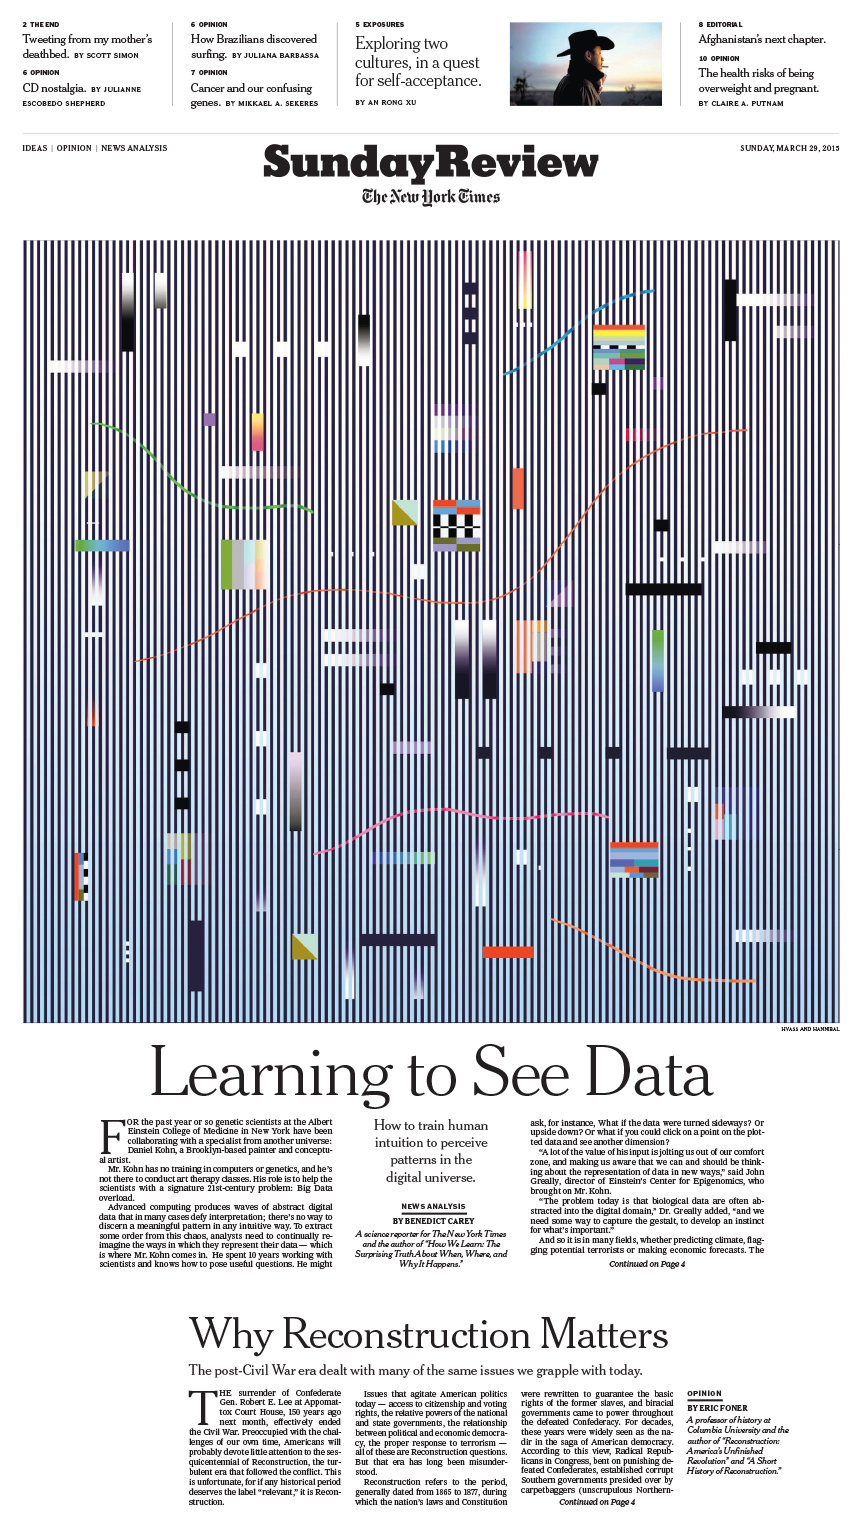 Sunday Review Cover: Learning To See Data